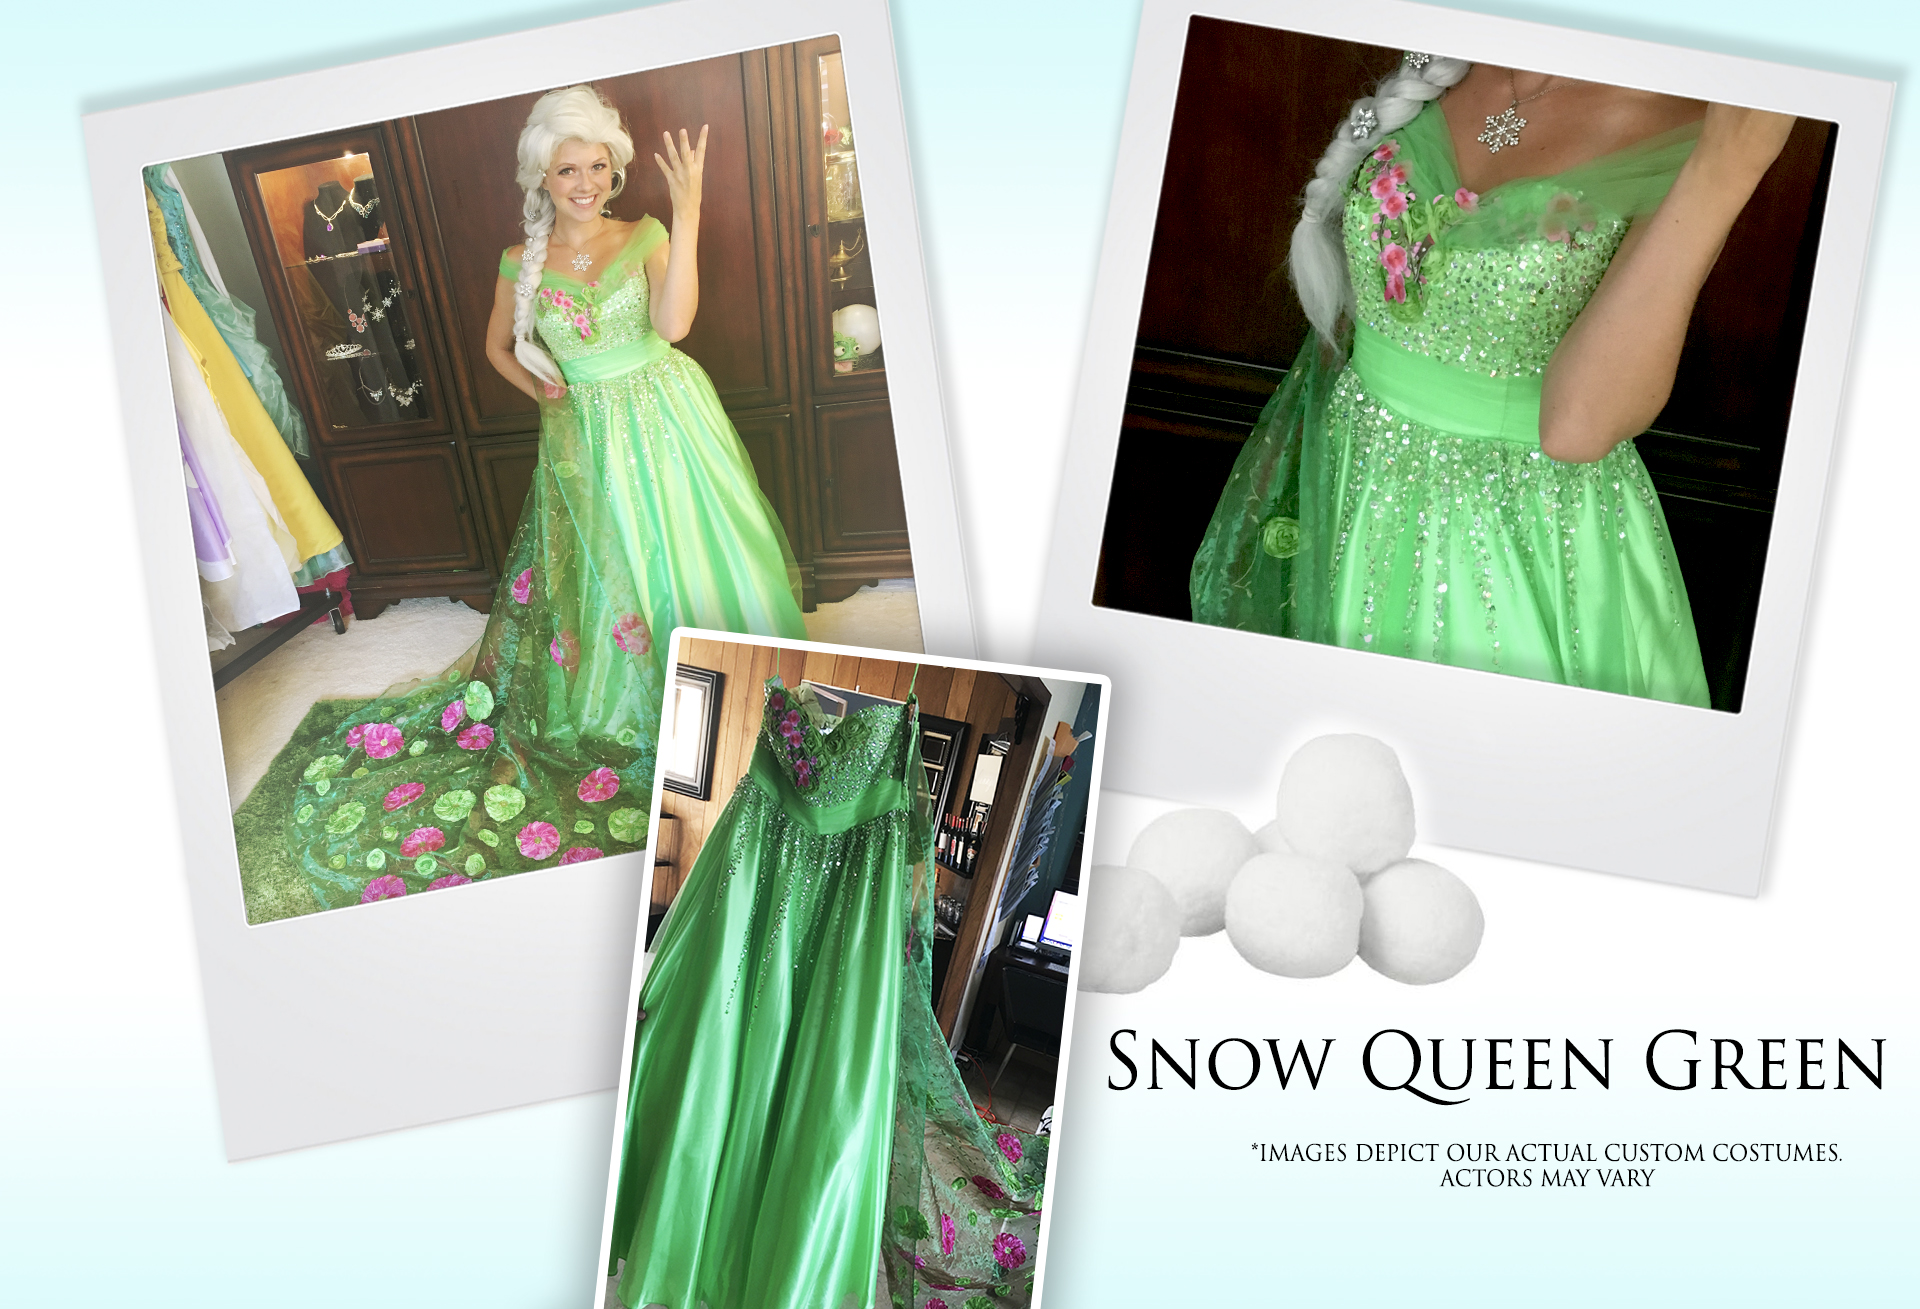 Snow Queen Green